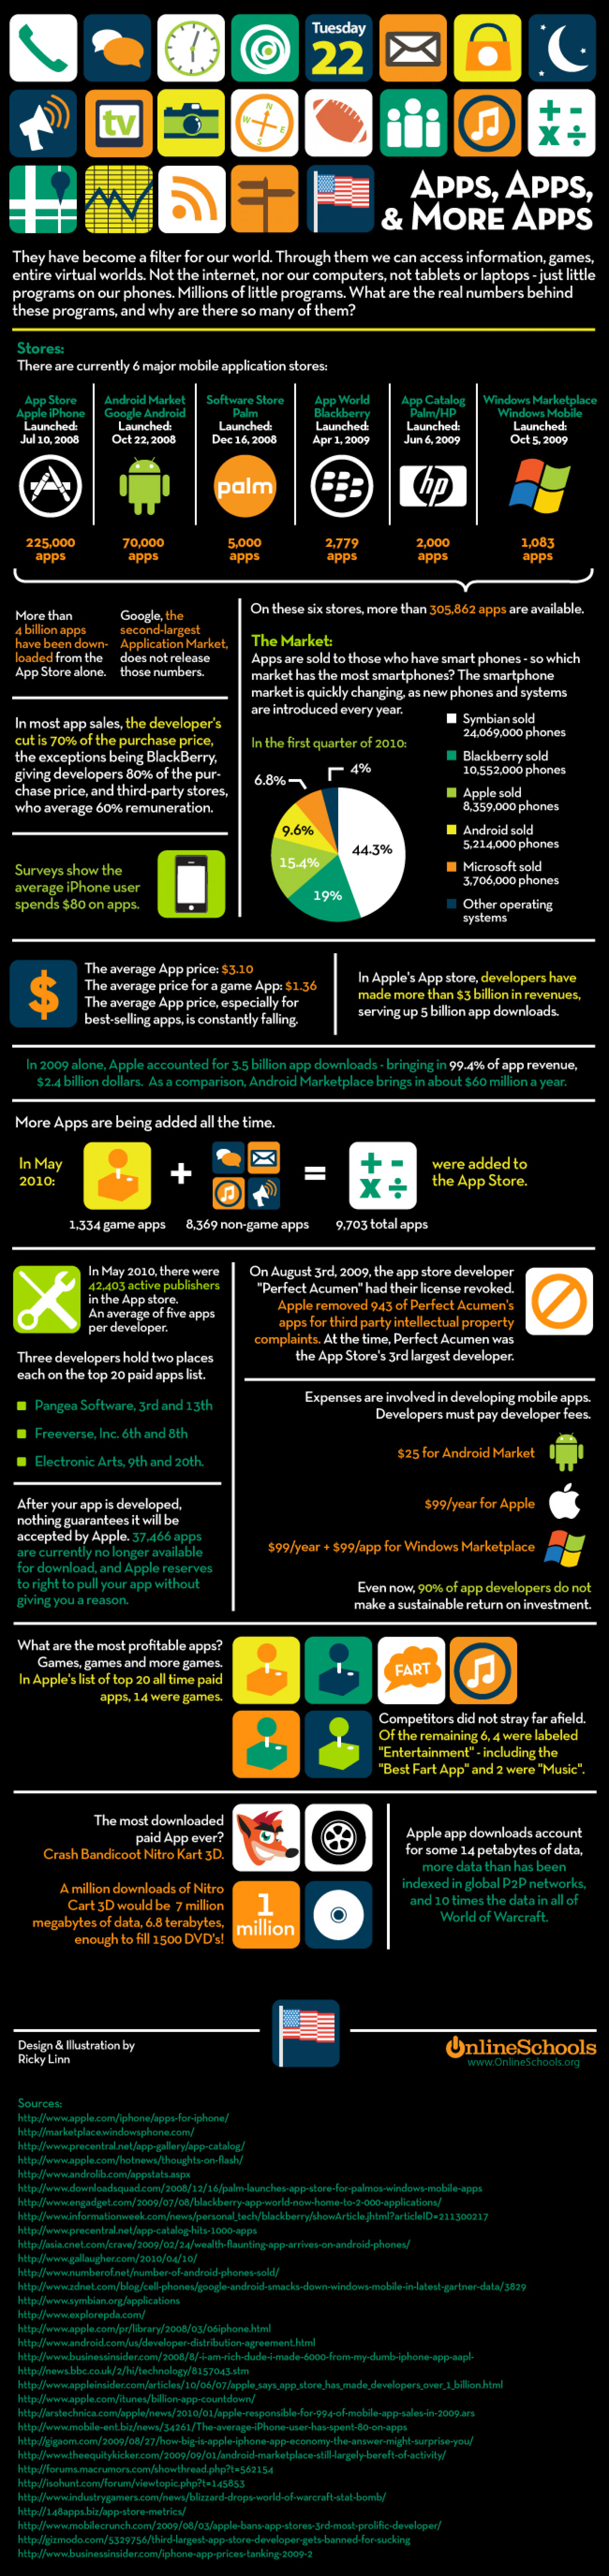 Mobile App Marketplace Infographic